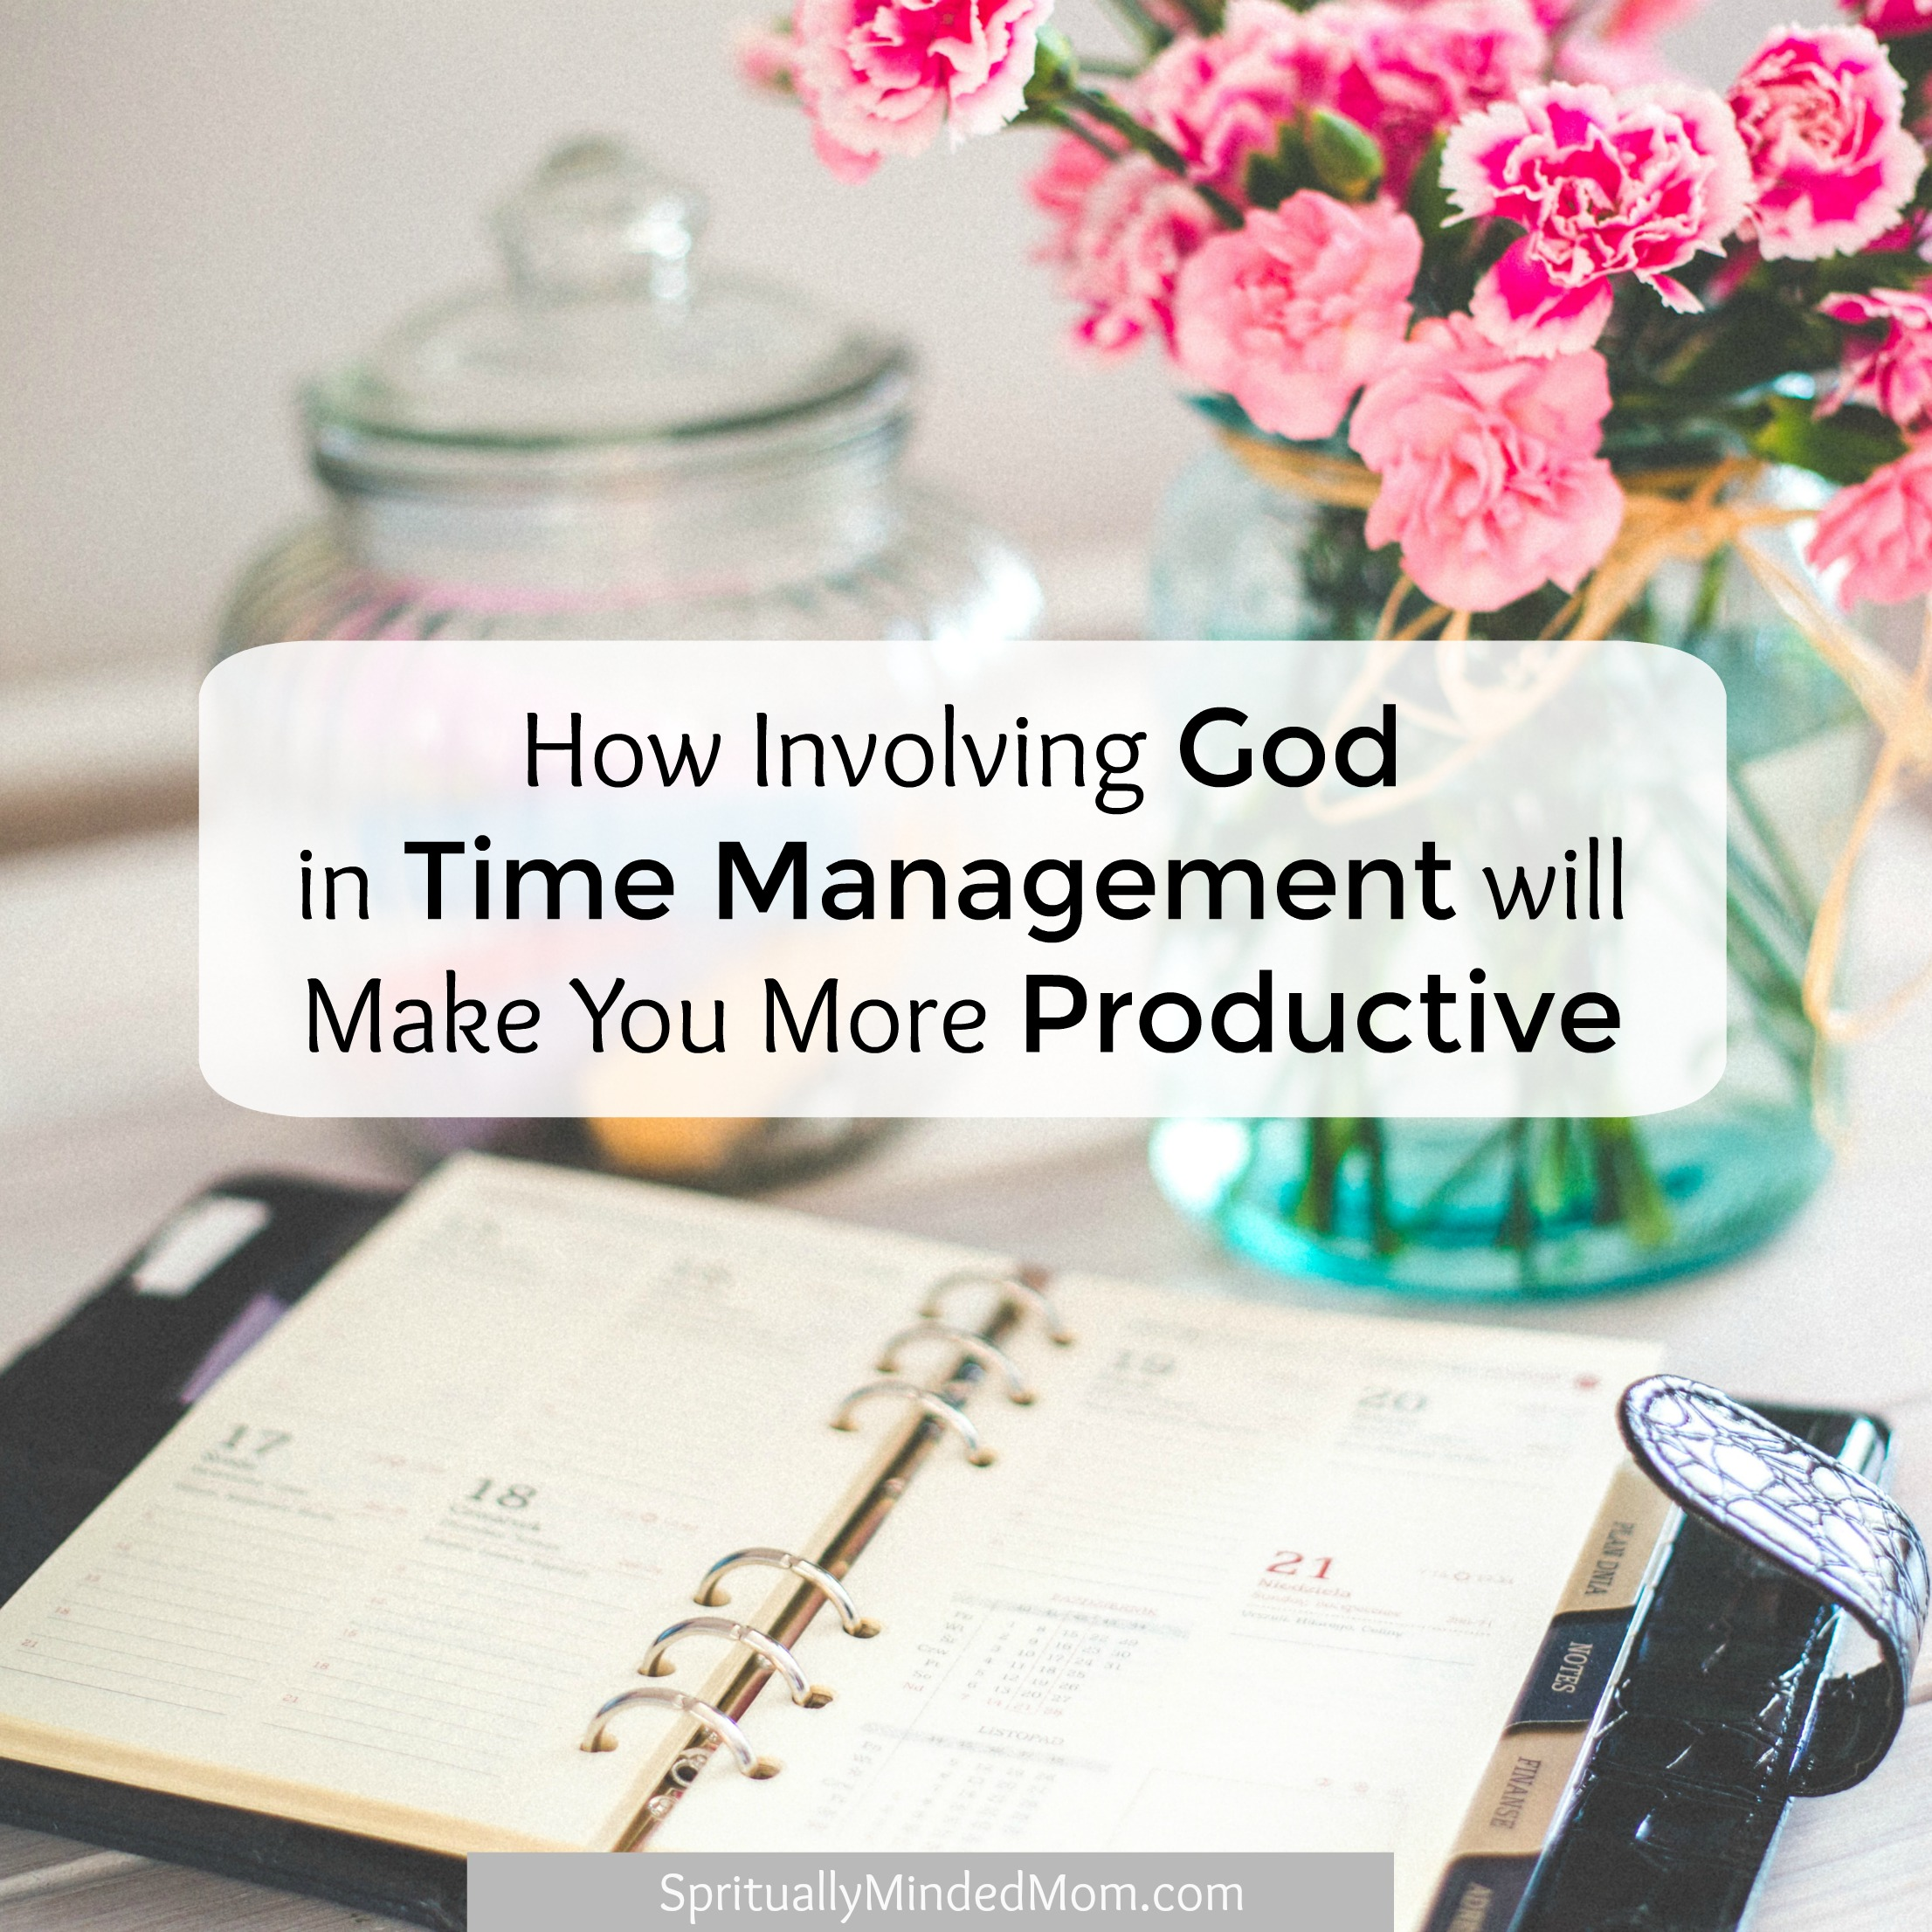 How Involving God in Time Management Will Make You More Productive